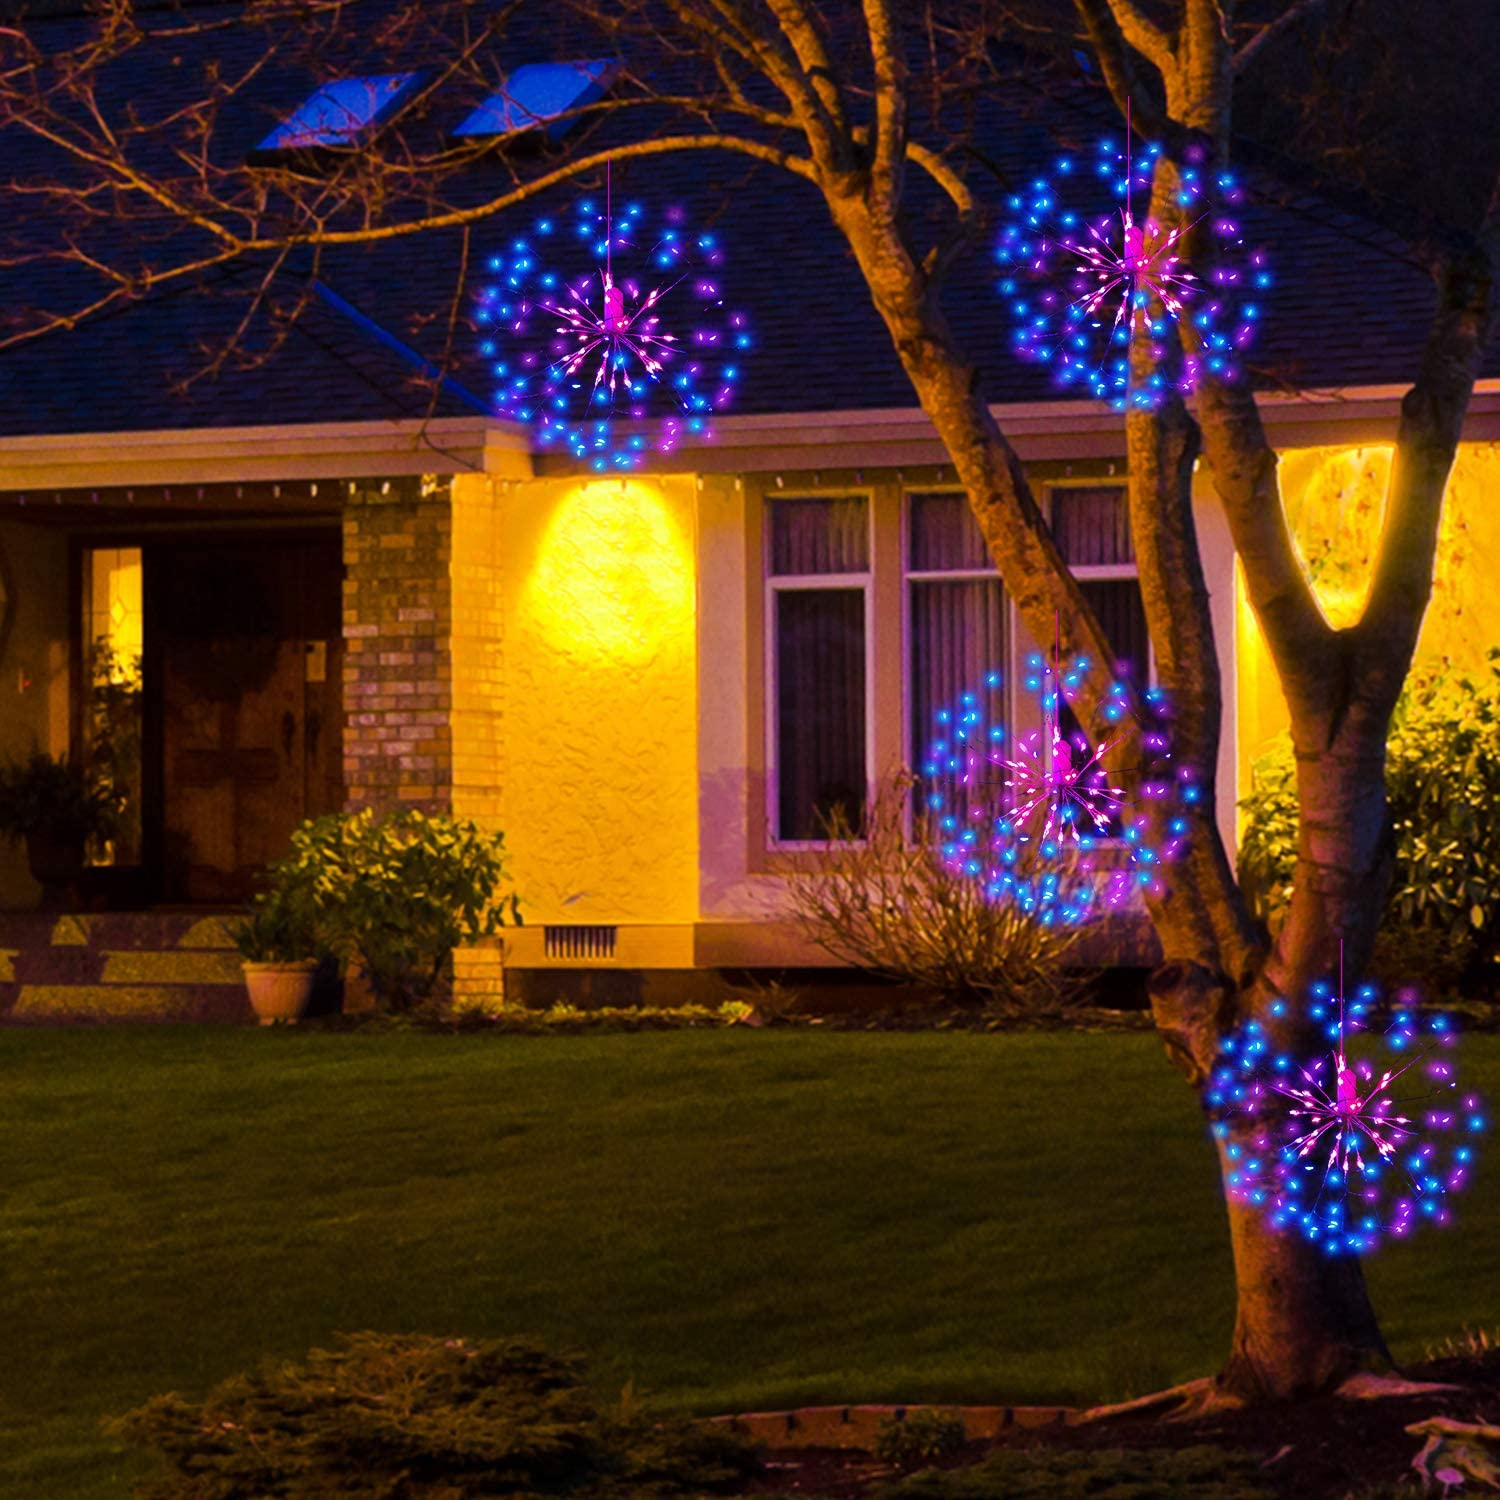 Waterproof Digitblue L-01 L-01 Fairy Battery Operated 2 Pack Outdoor String Light Multi Color